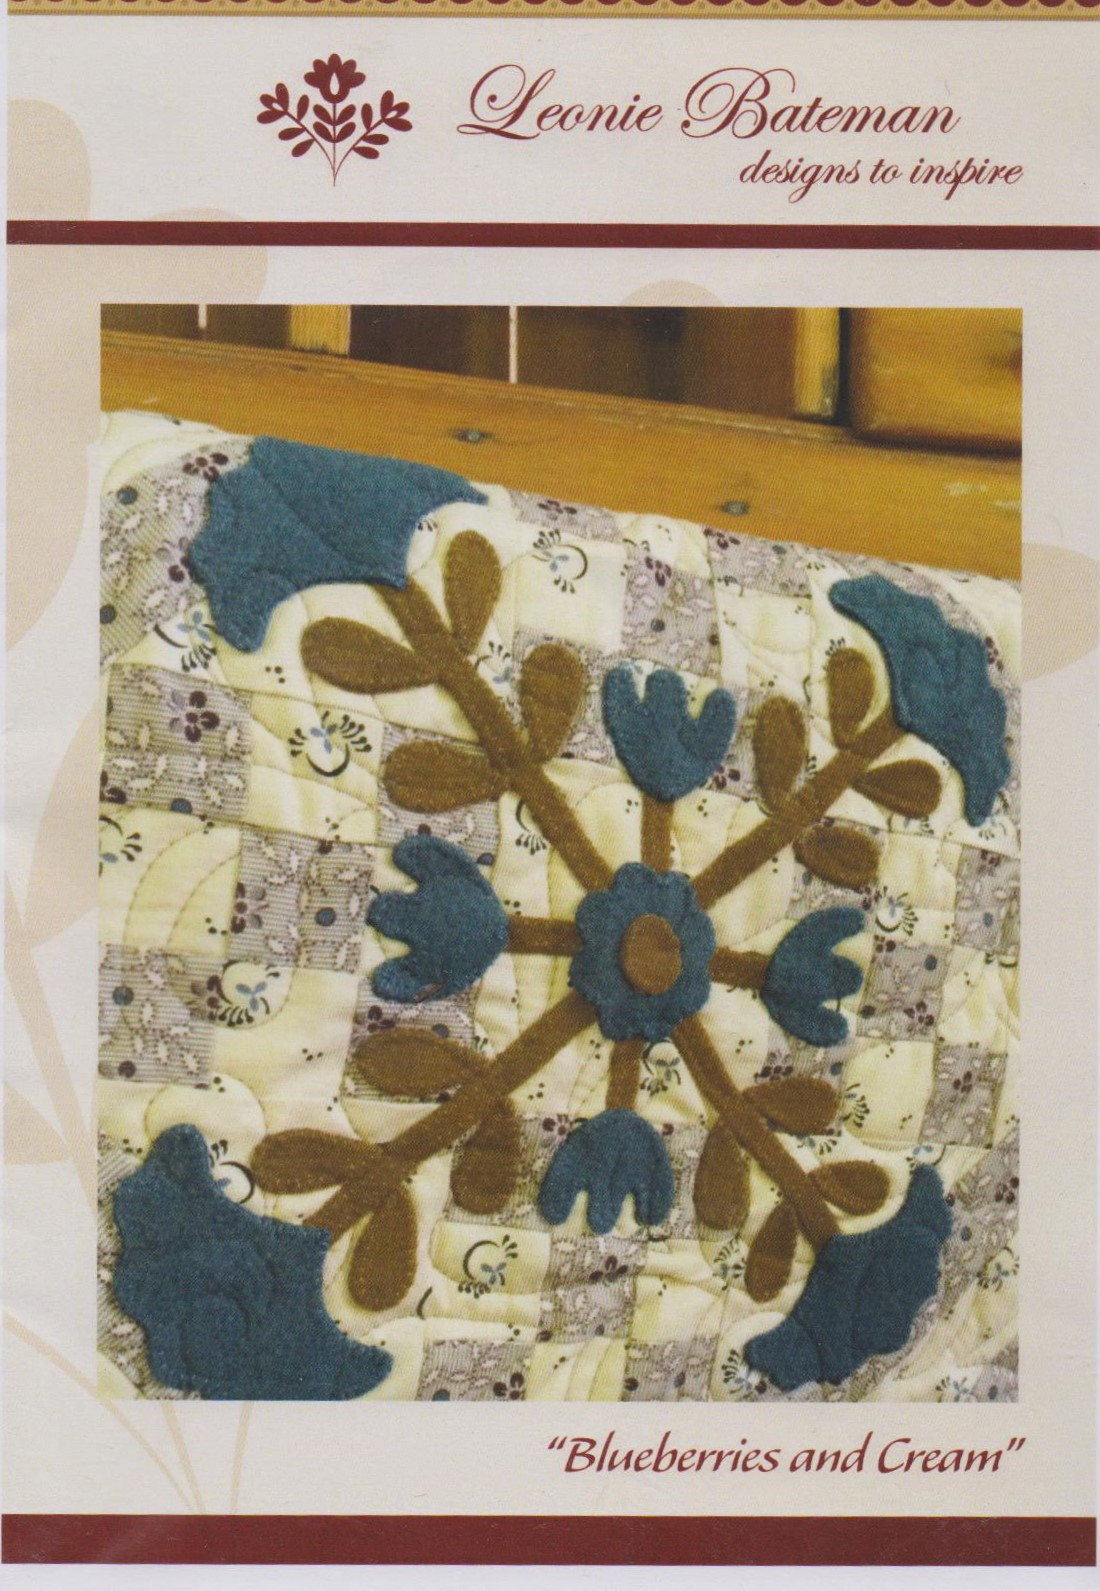 Blueberries and Cream Table Topper Kit from Leonie Bateman Designs